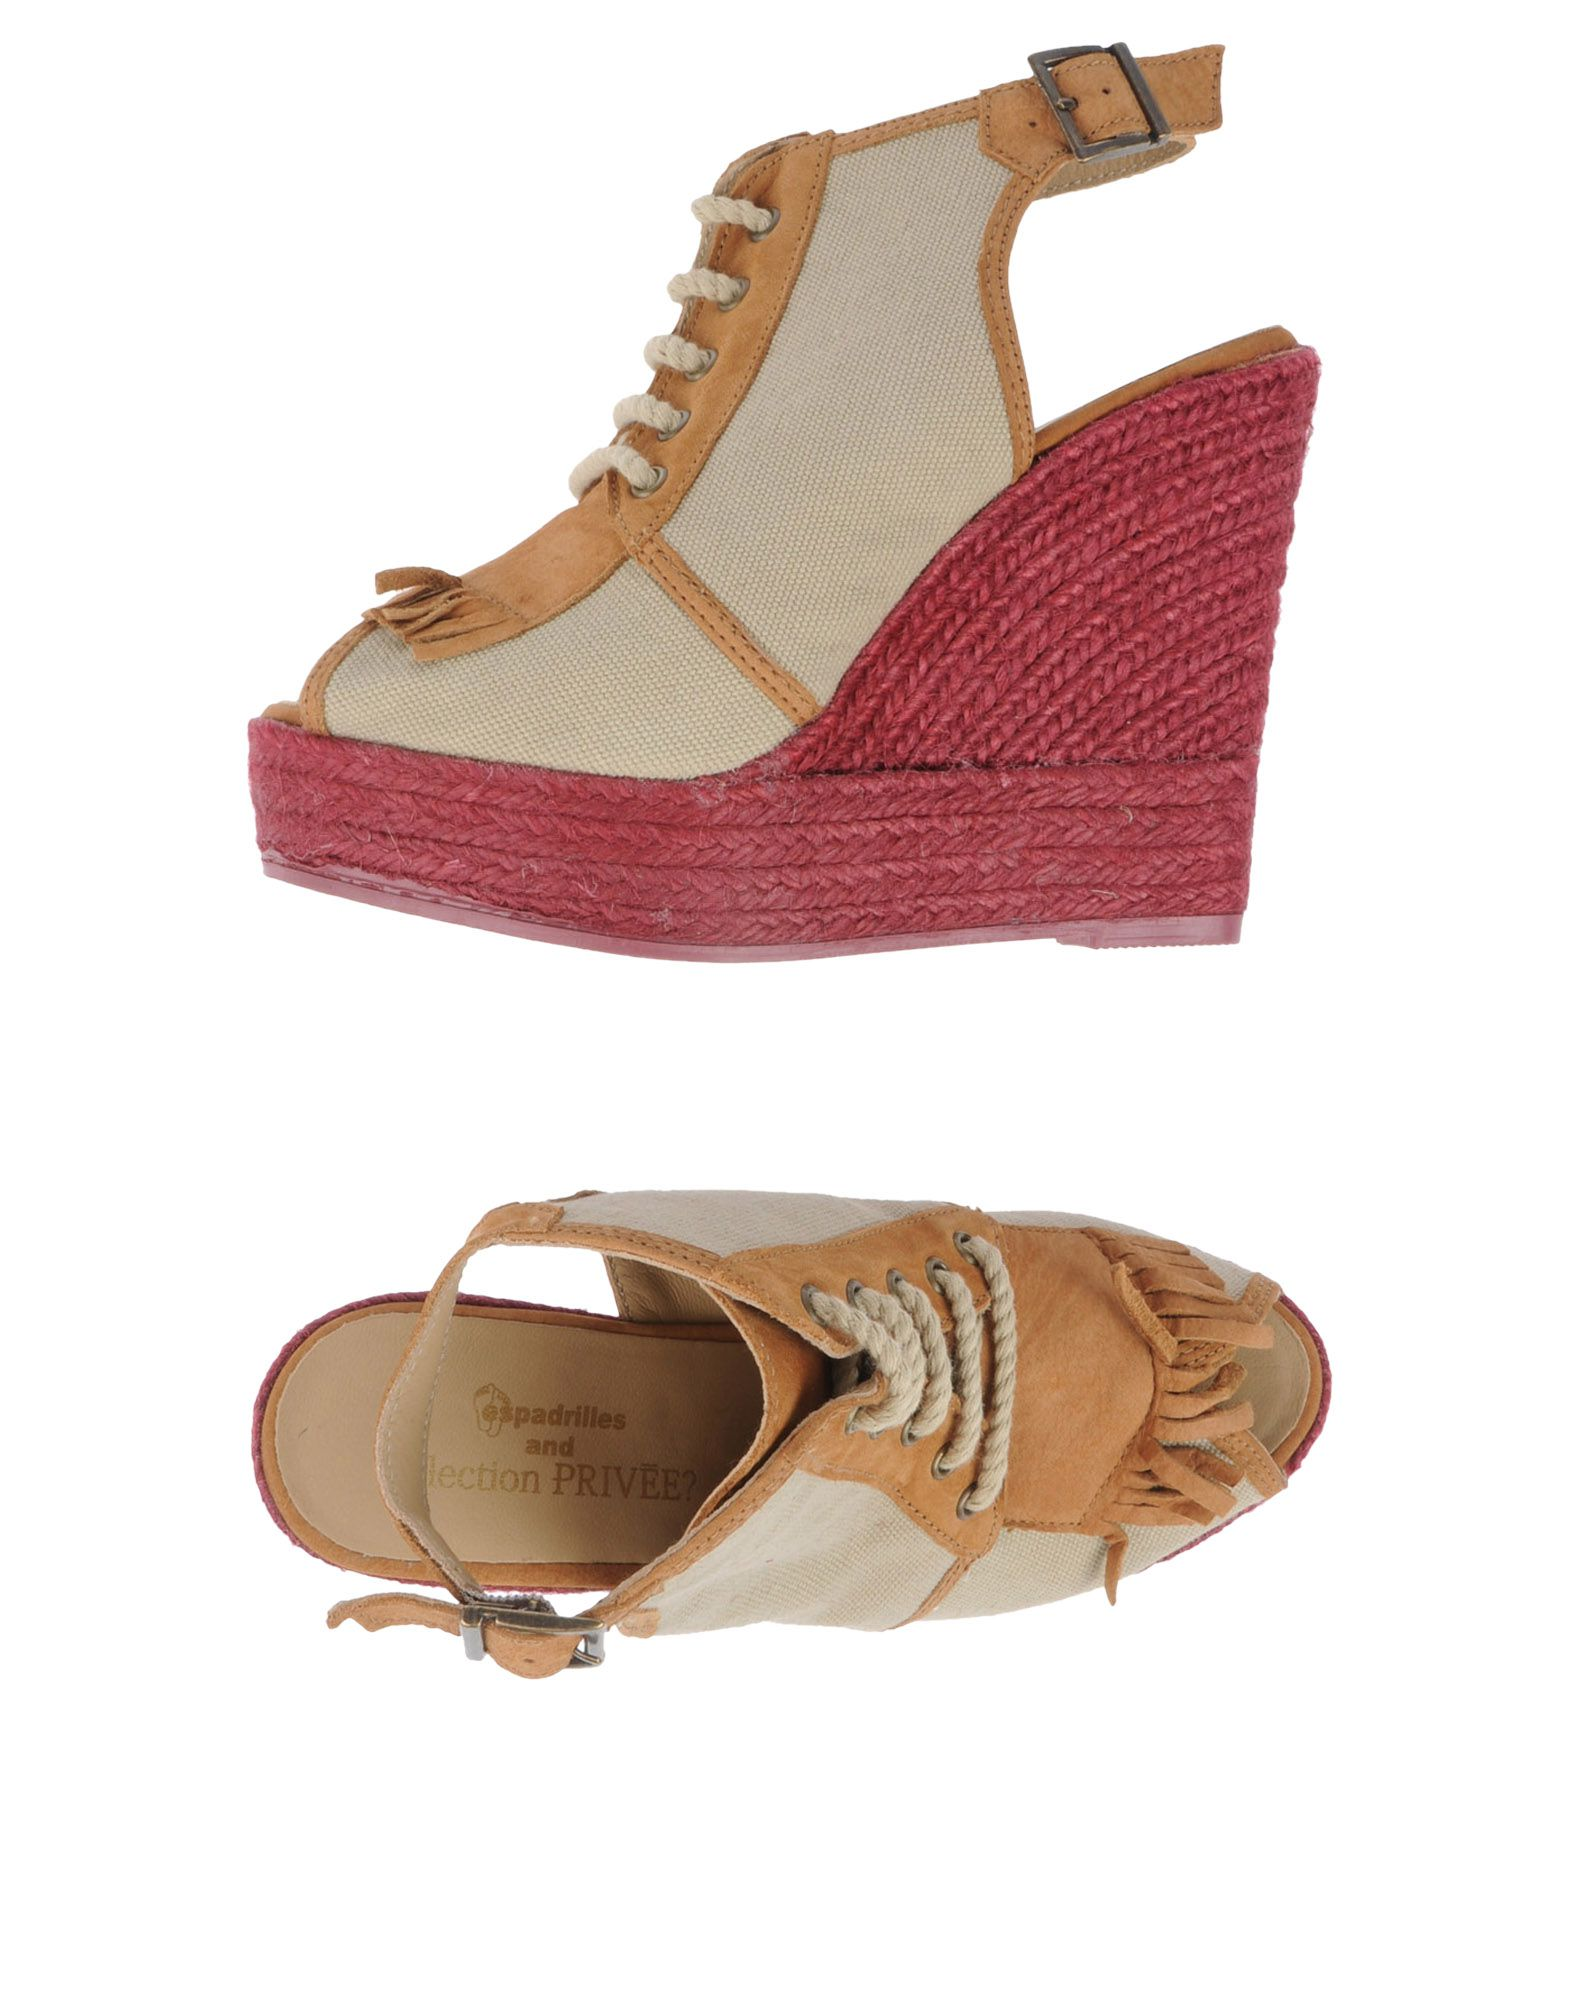 ESPADRILLES AND COLLECTION PRIVEE | ESPADRILLES and COLLECTION PRIVEE? Espadrilles | Goxip